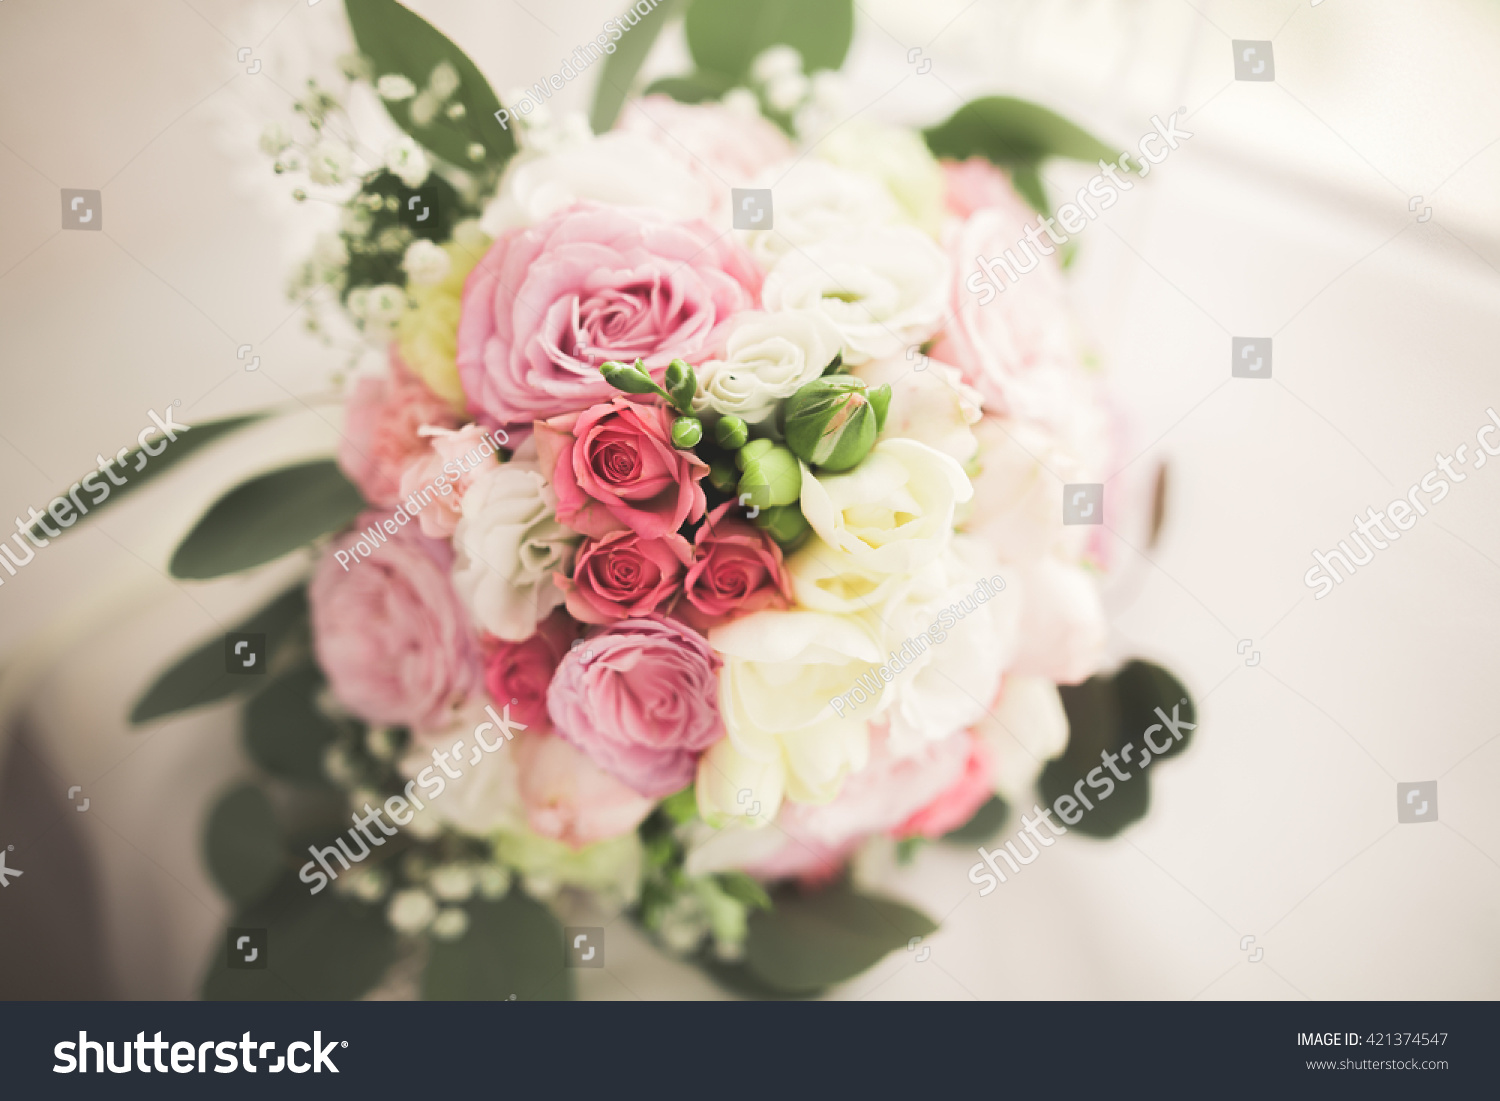 Wonderful luxury wedding bouquet of different flowers ez canvas izmirmasajfo